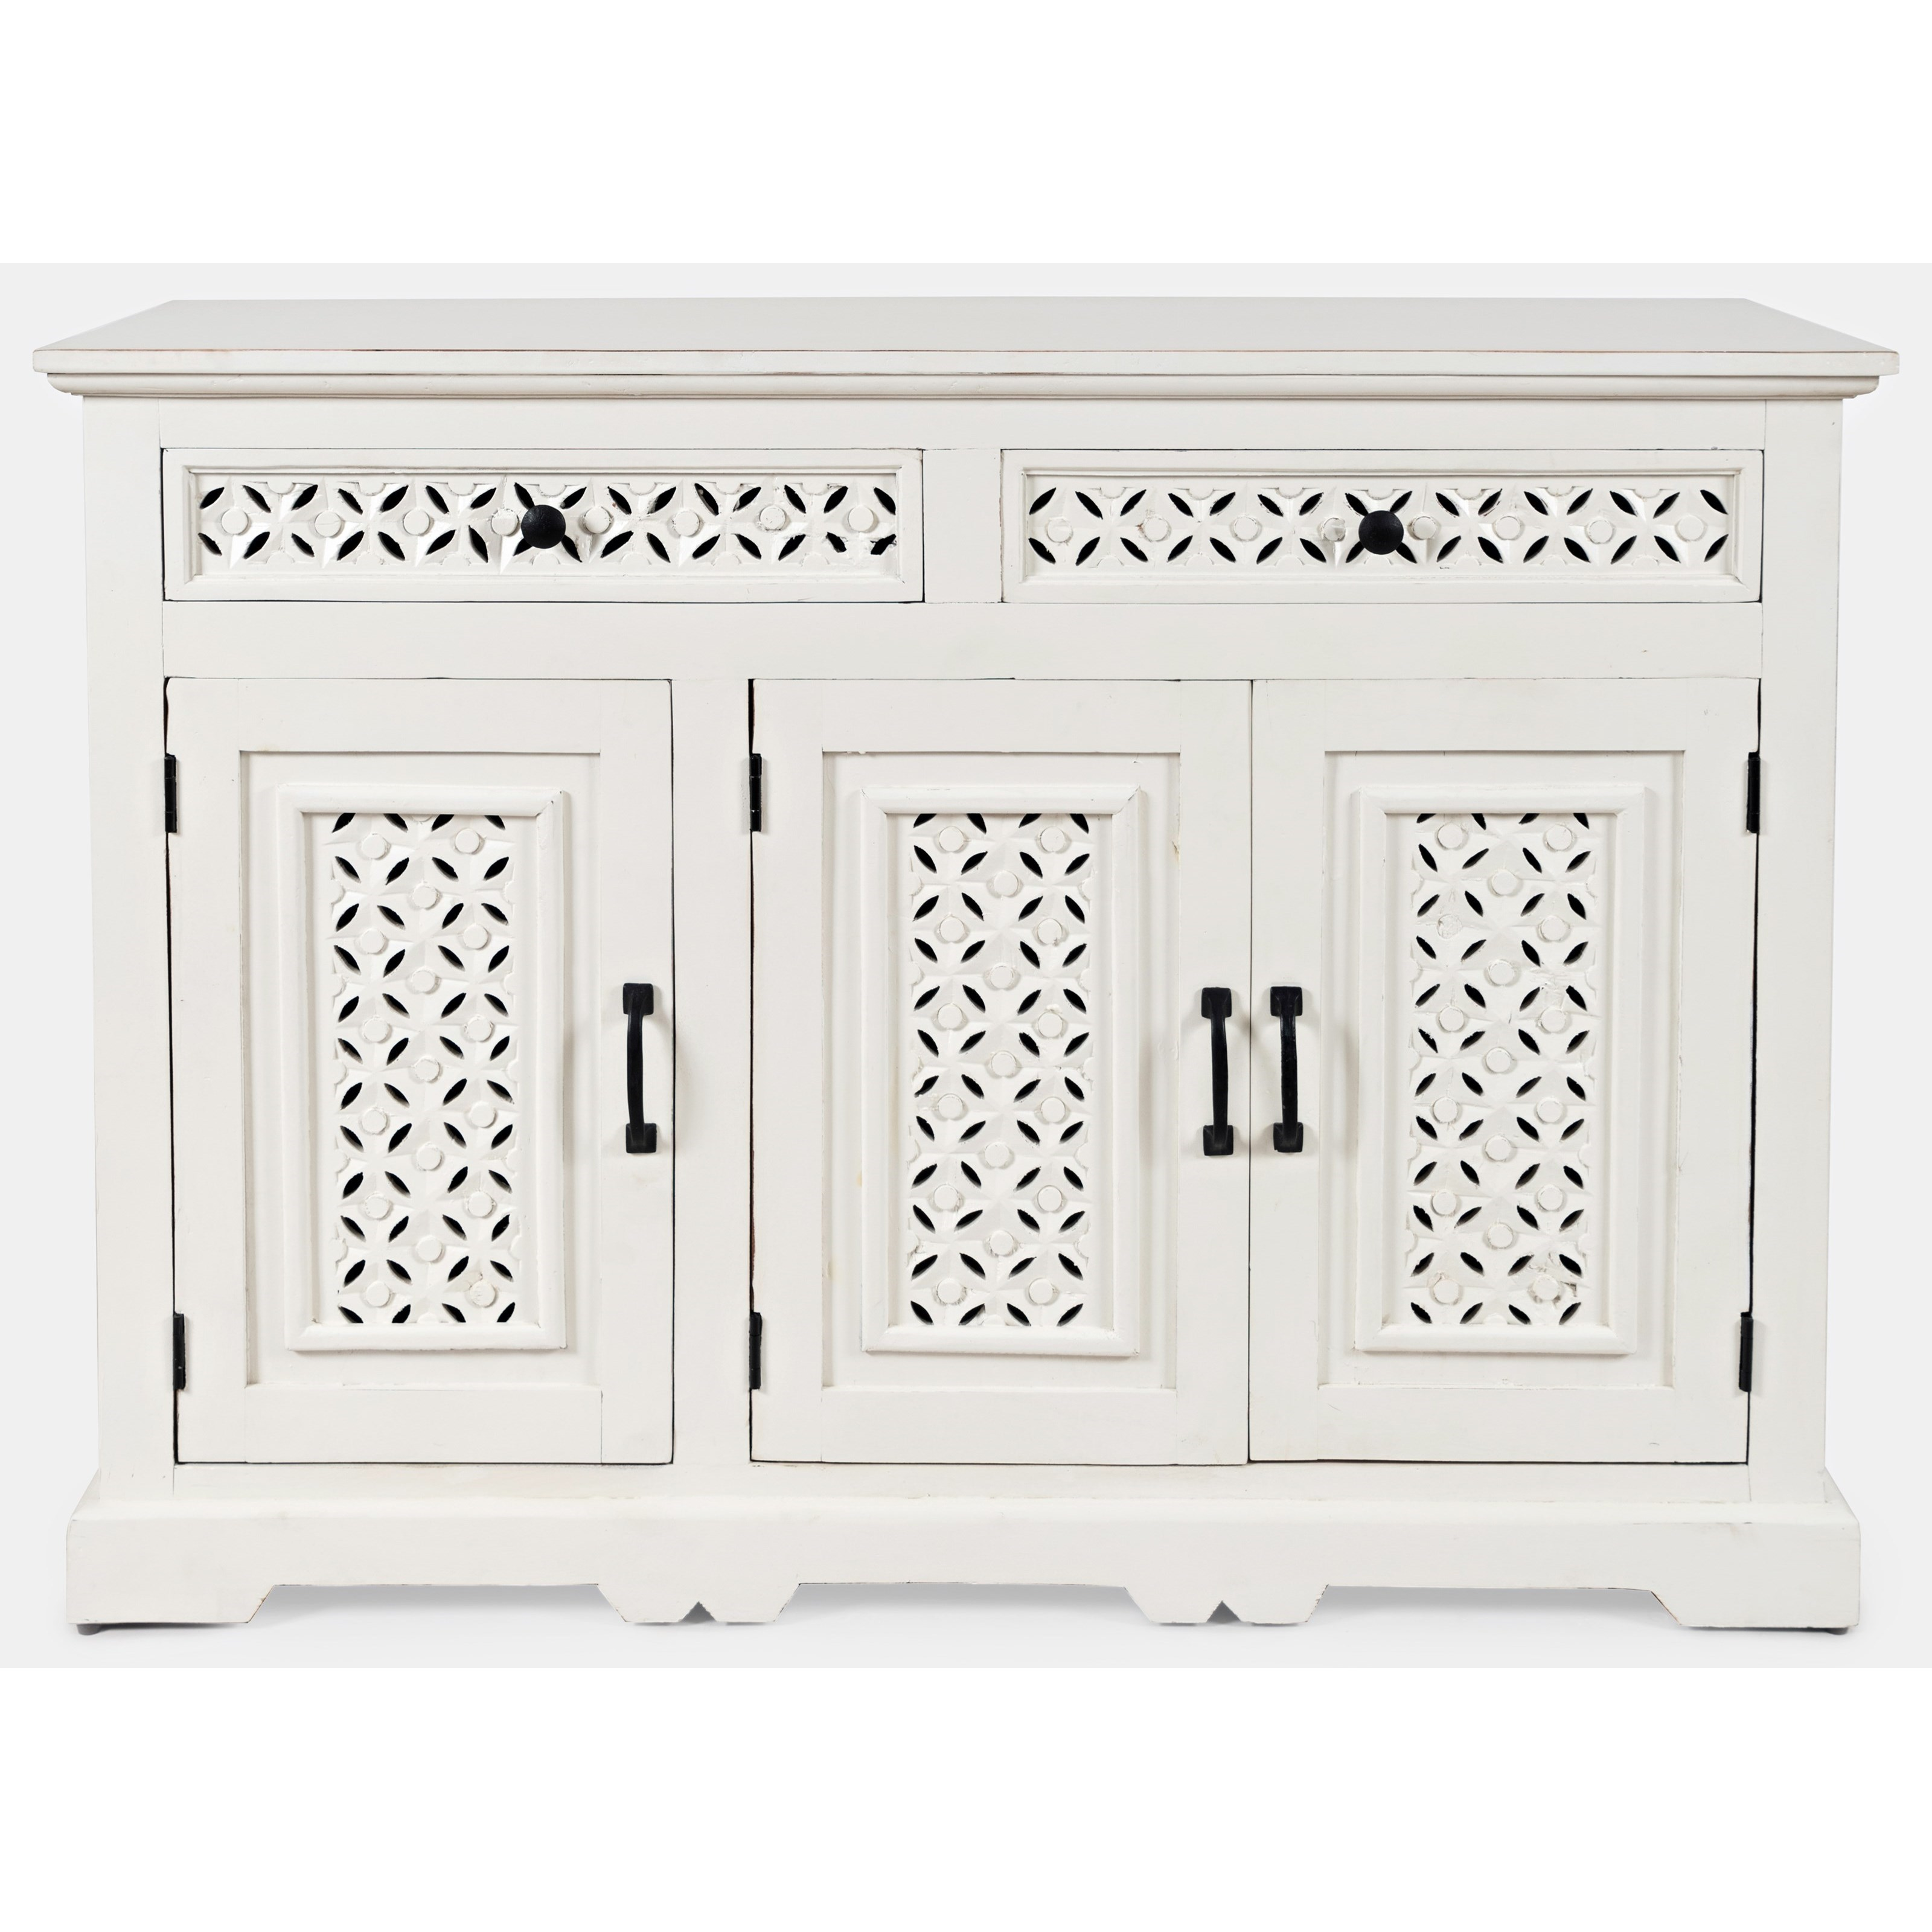 "Global Archive Decker 48"" Console by Jofran at Stoney Creek Furniture"